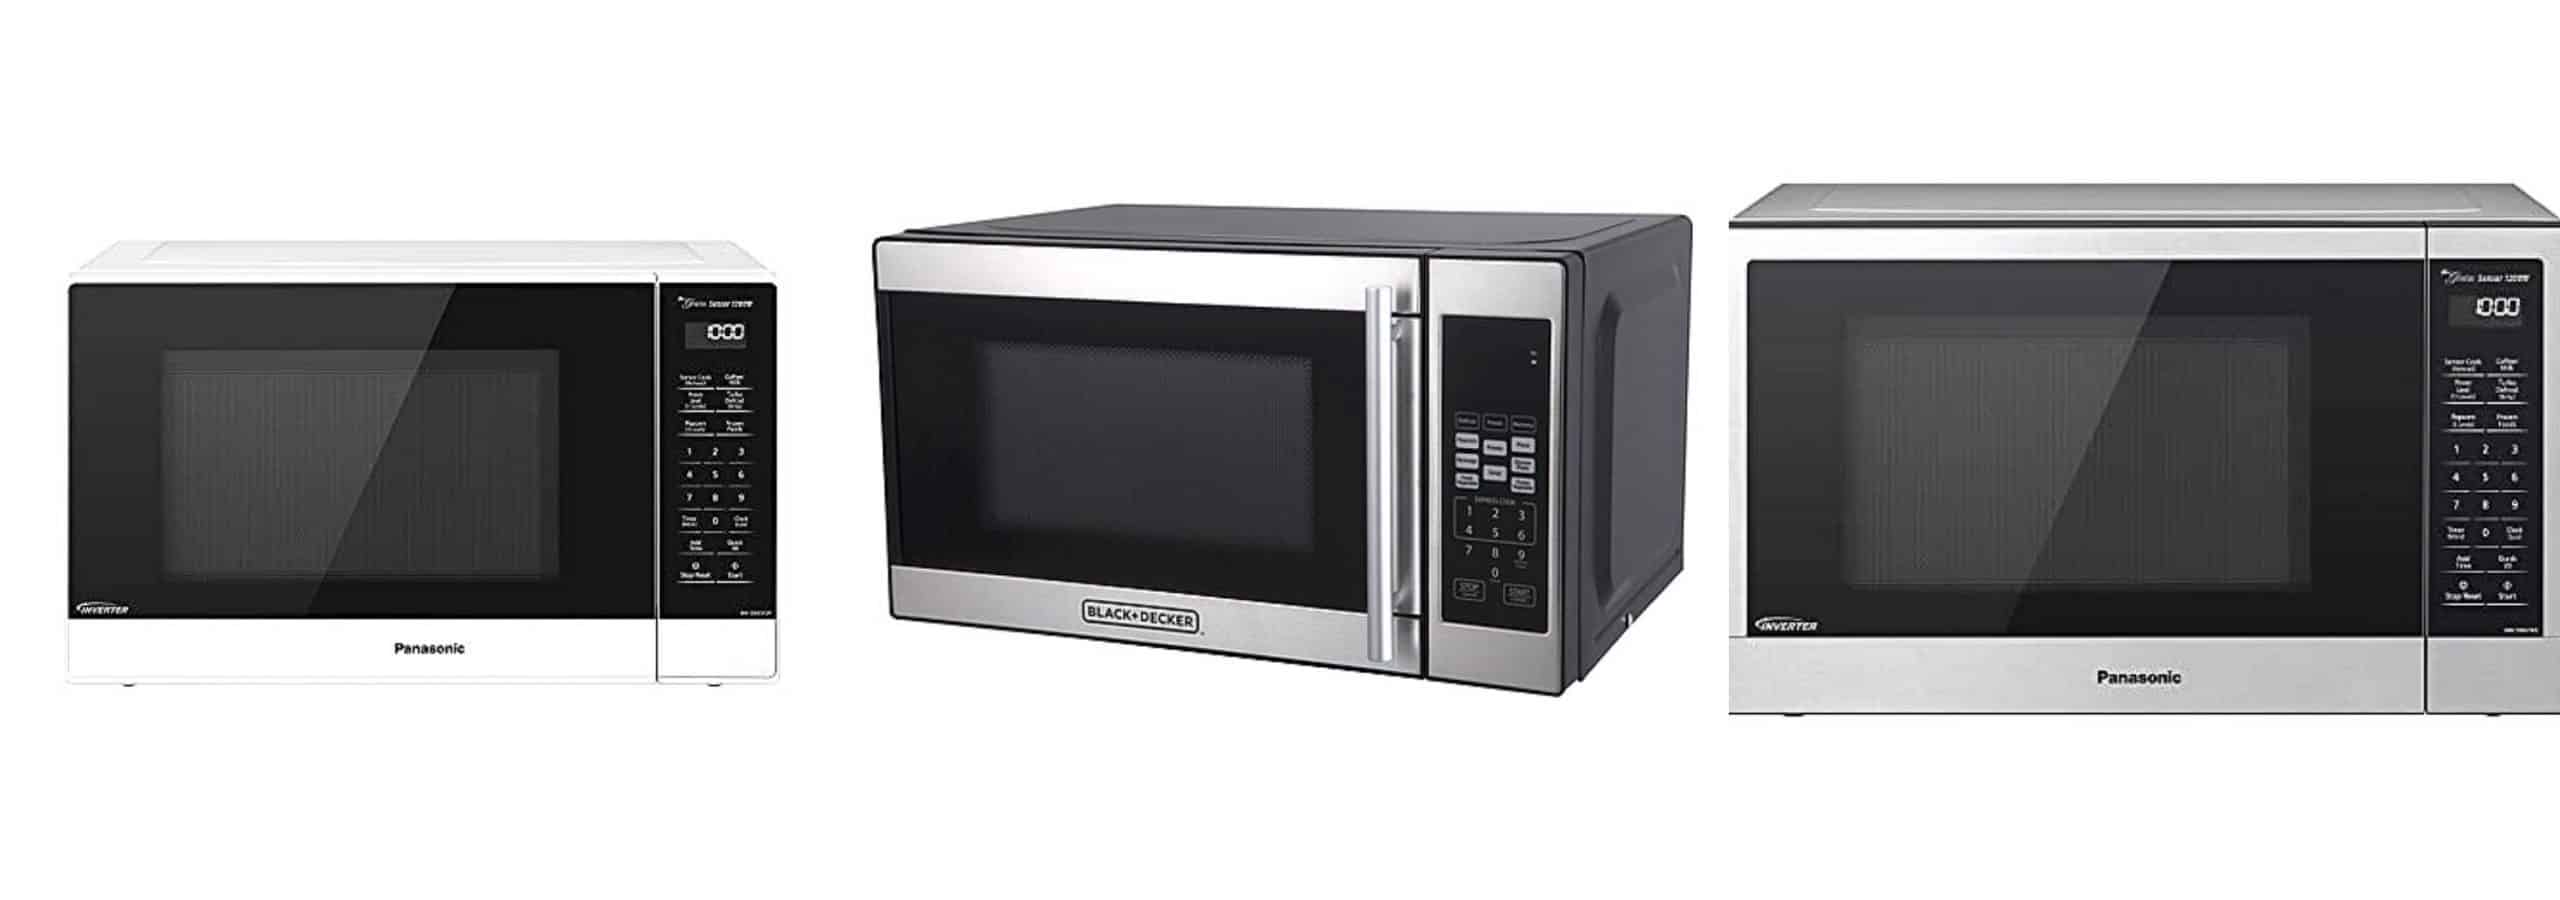 product testing for microwave oven